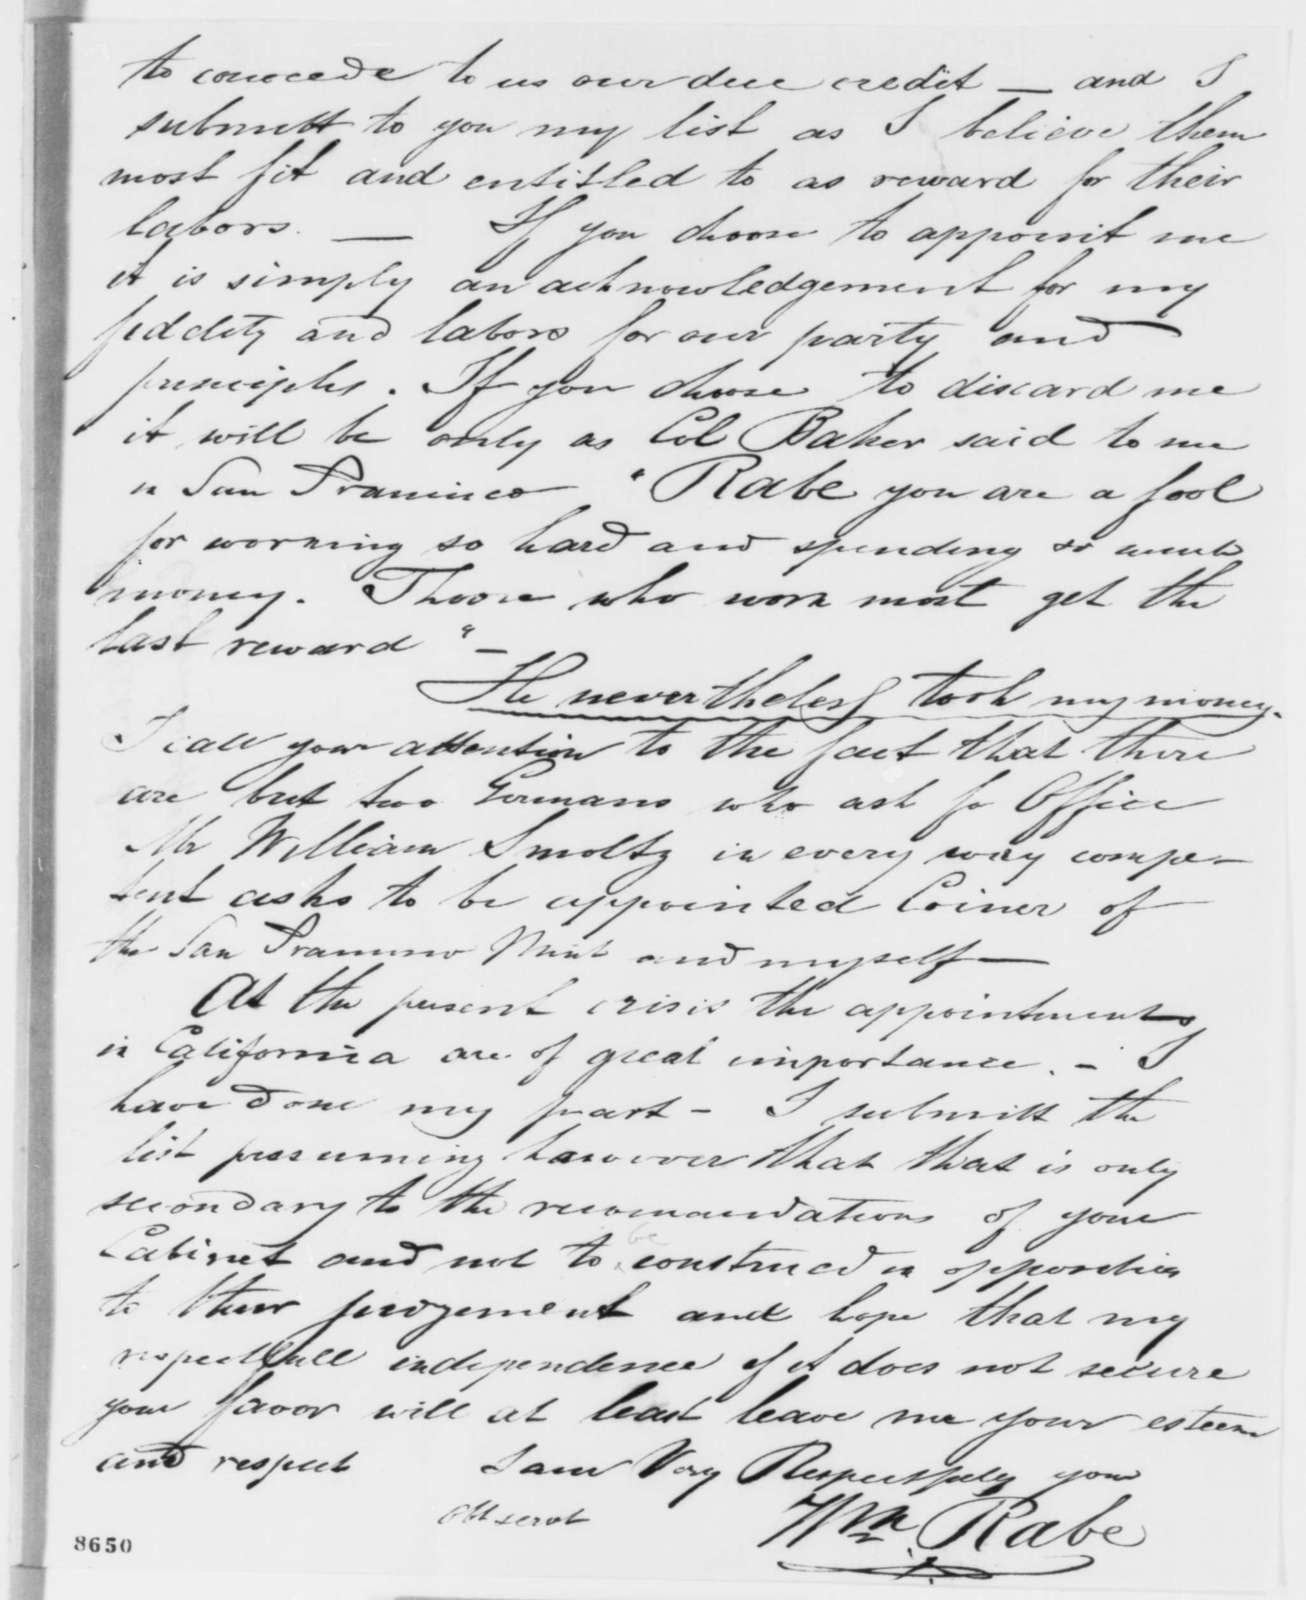 William Rabe to Abraham Lincoln, Monday, April 01, 1861  (California appointments)